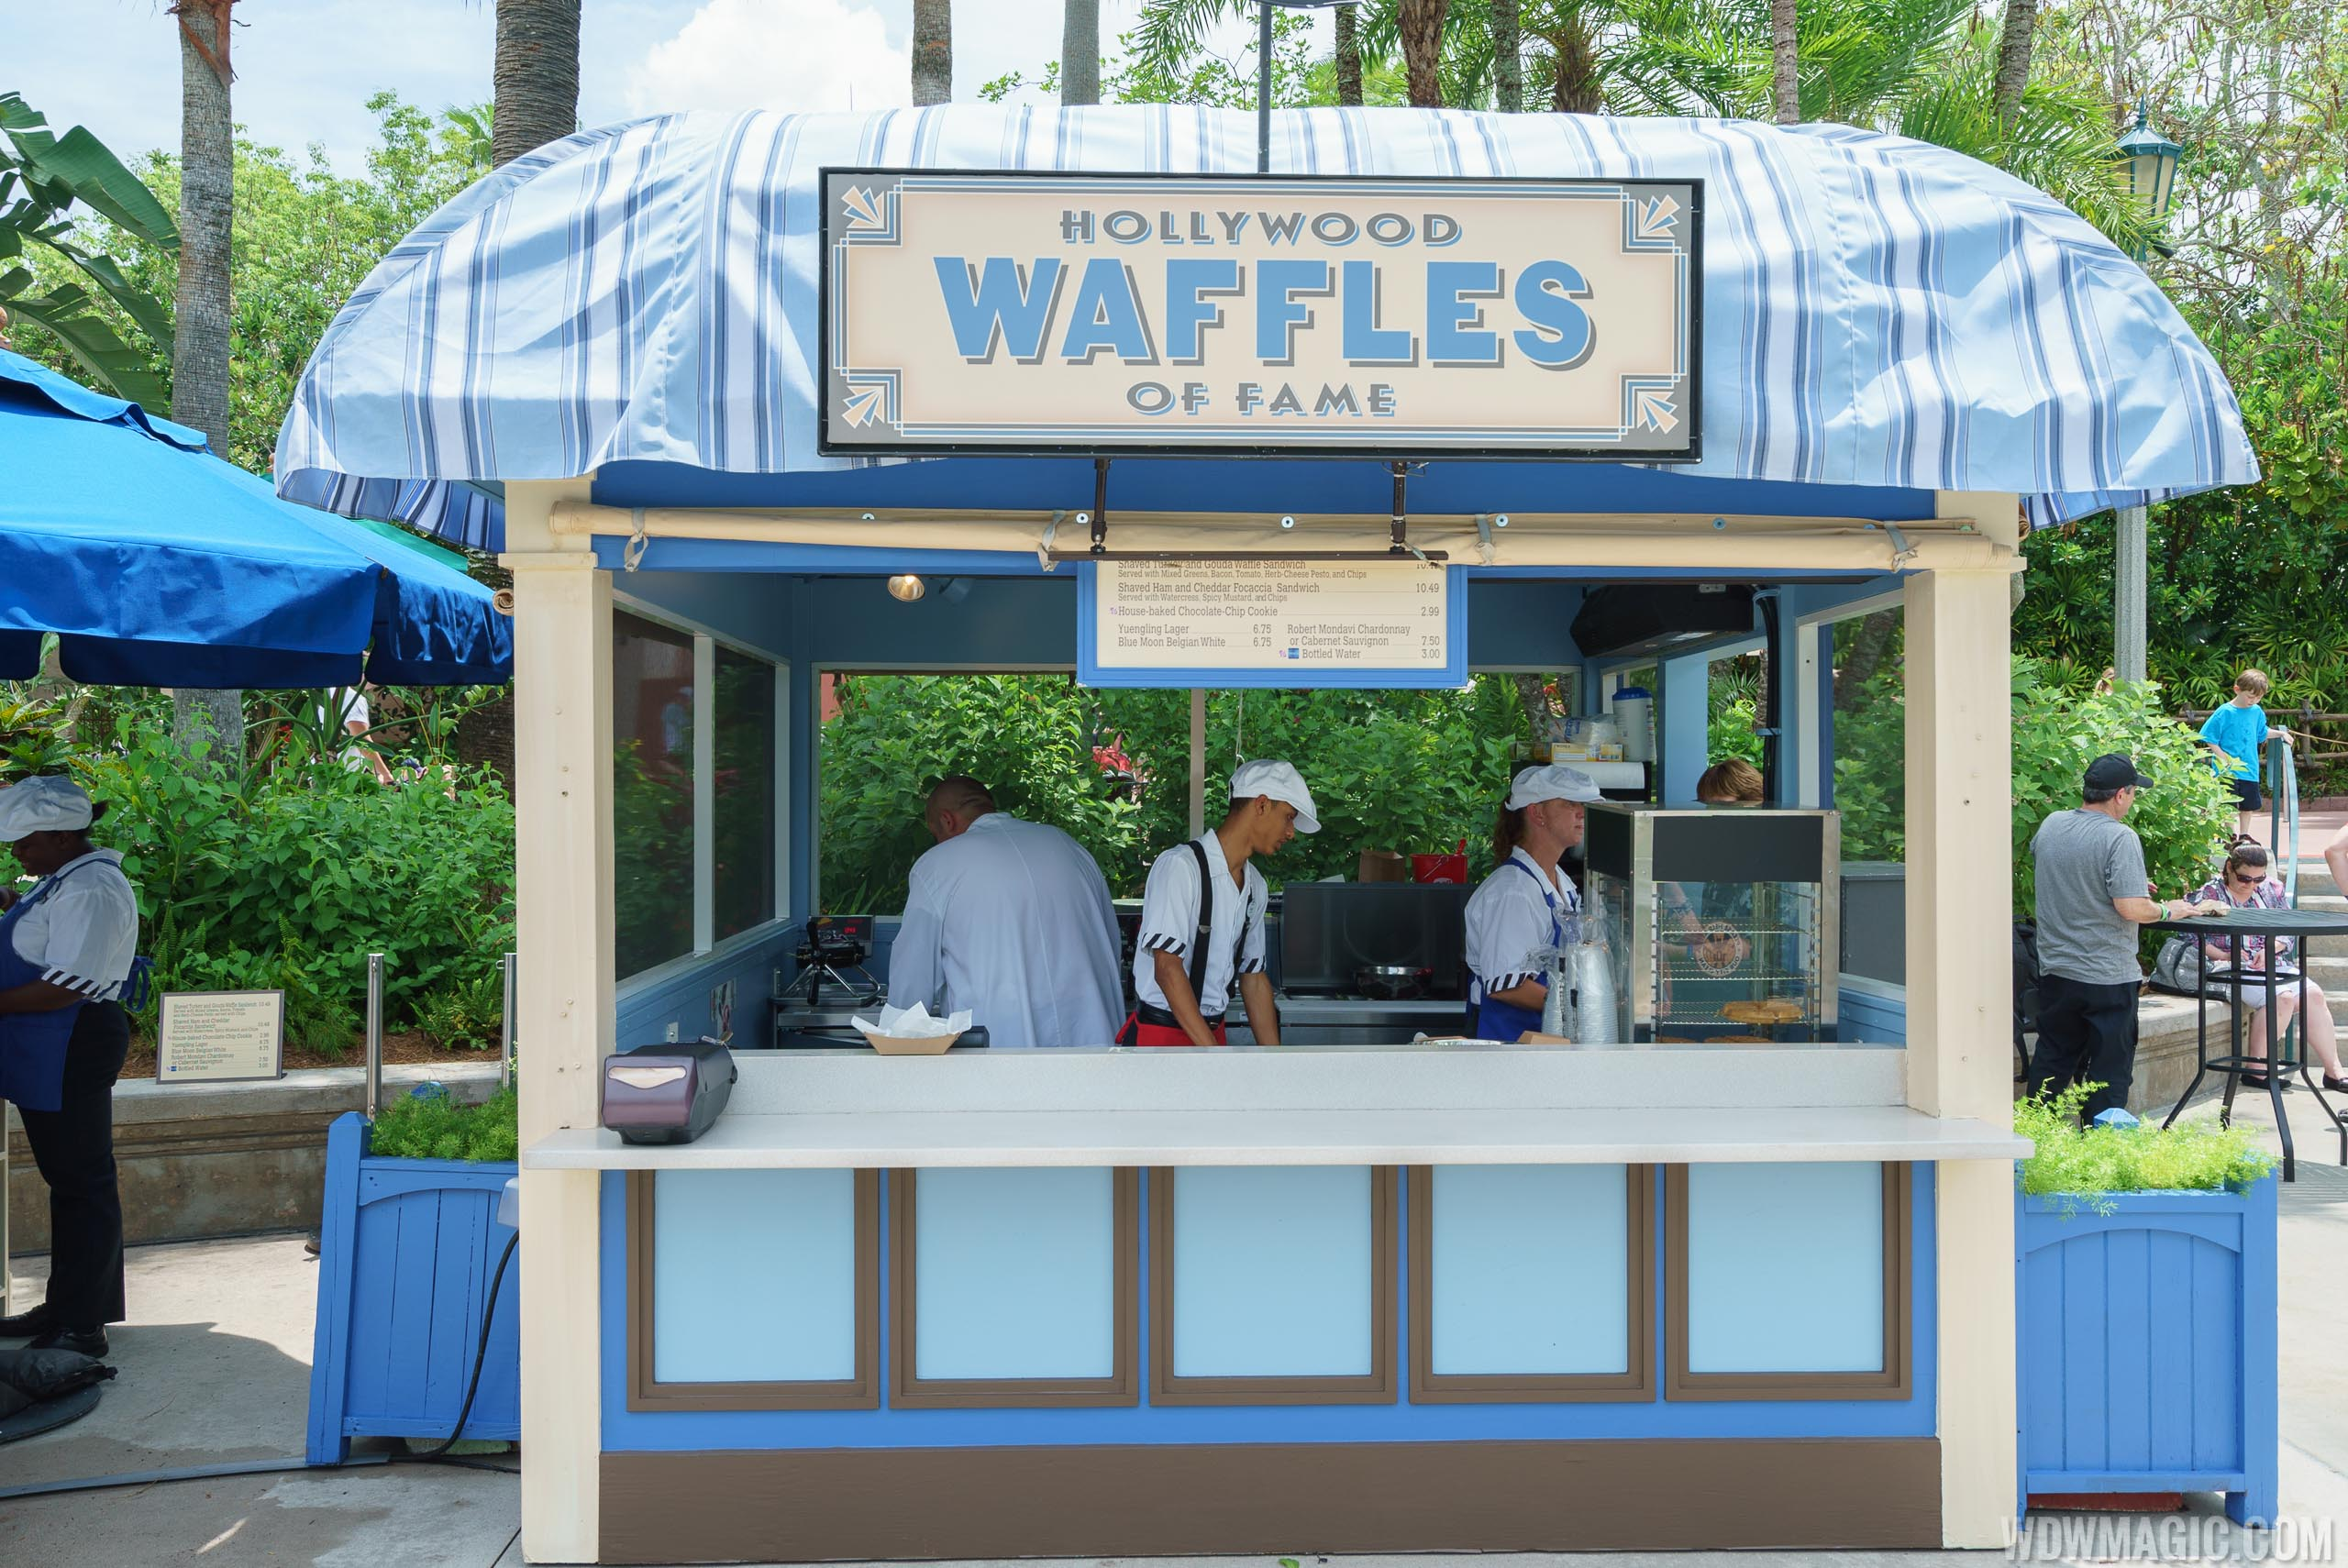 Hollywood Waffles of Fame kiosk